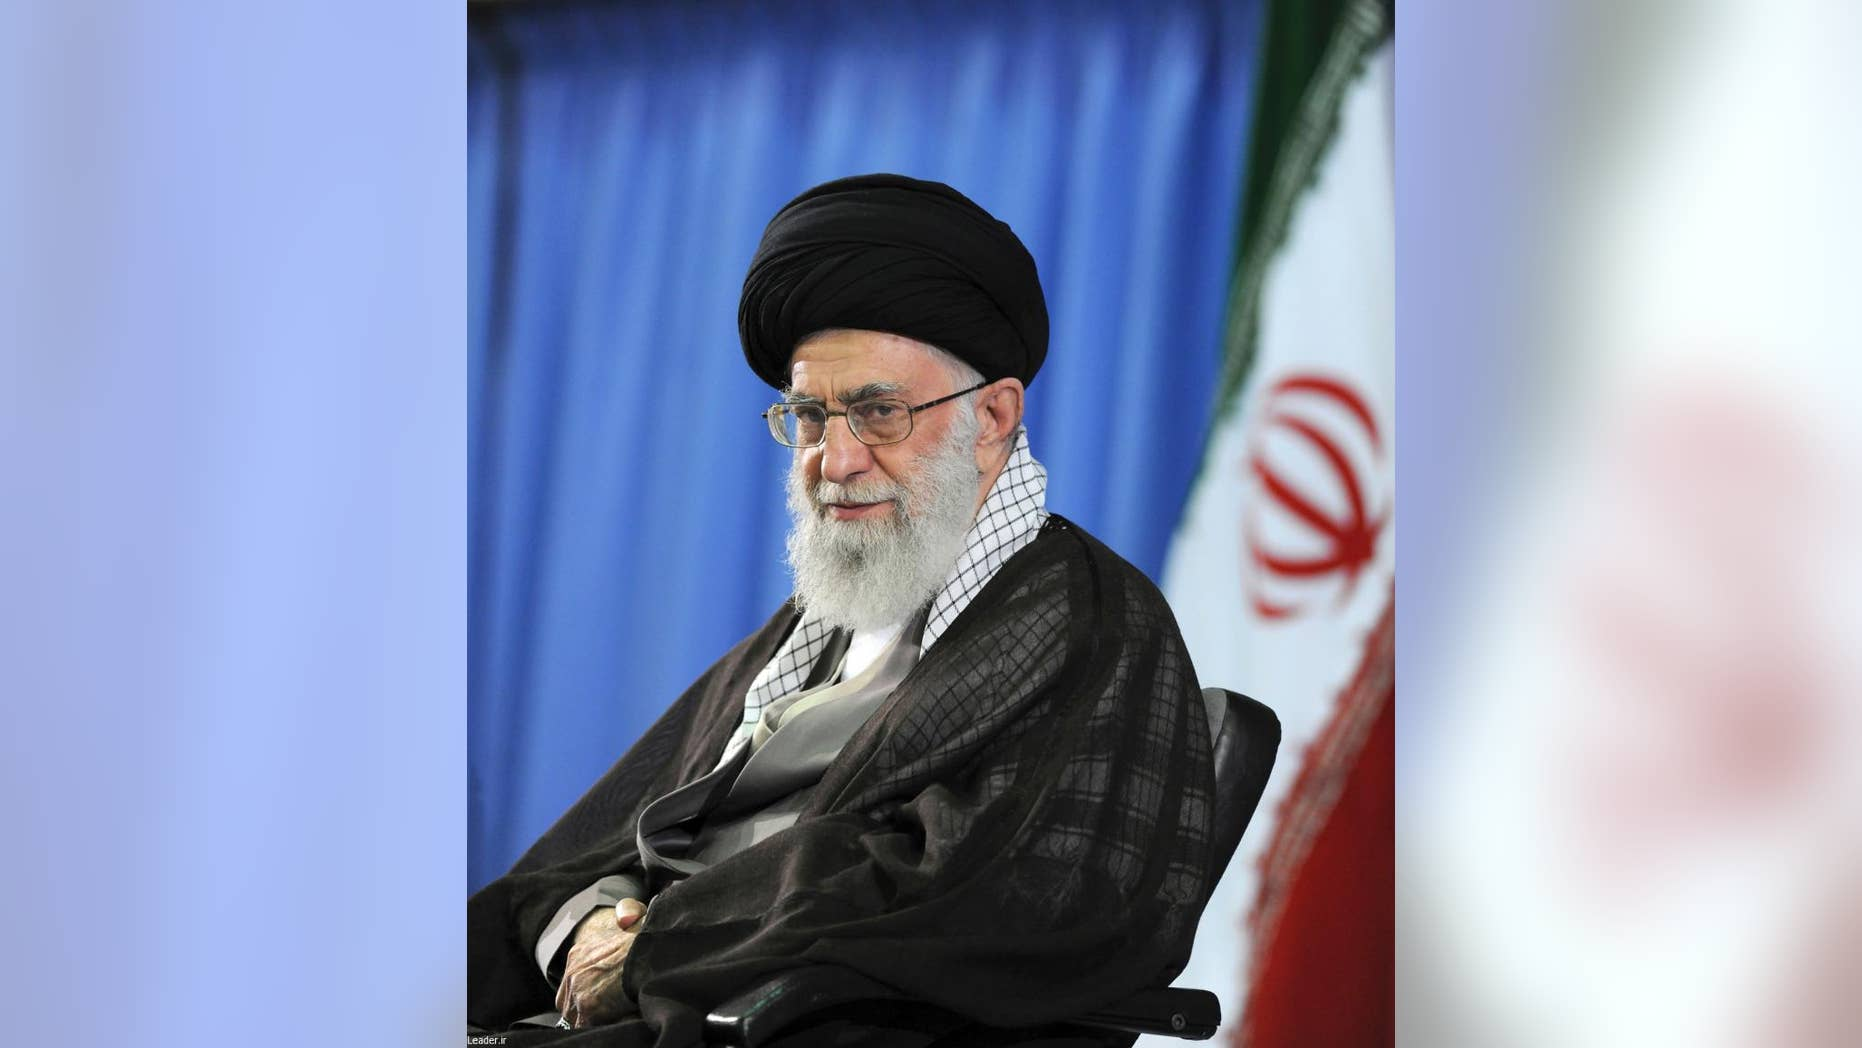 FILE - In this file picture released by the official website of the office of the Iranian supreme leader on Saturday, July 11, 2015, Supreme Leader Ayatollah Ali Khamenei attends a meeting with university students in Tehran, Iran. Khamenei is opposed to a landmark nuclear deal reached with world powers, prominent hard-liner Hossein Shariatmadari, editor of the daily newspaper Kayhan and a representative of Khamenei, claimed in an editorial Saturday, Aug. 15, 2015. (Office of the Iranian Supreme Leader via AP, File)